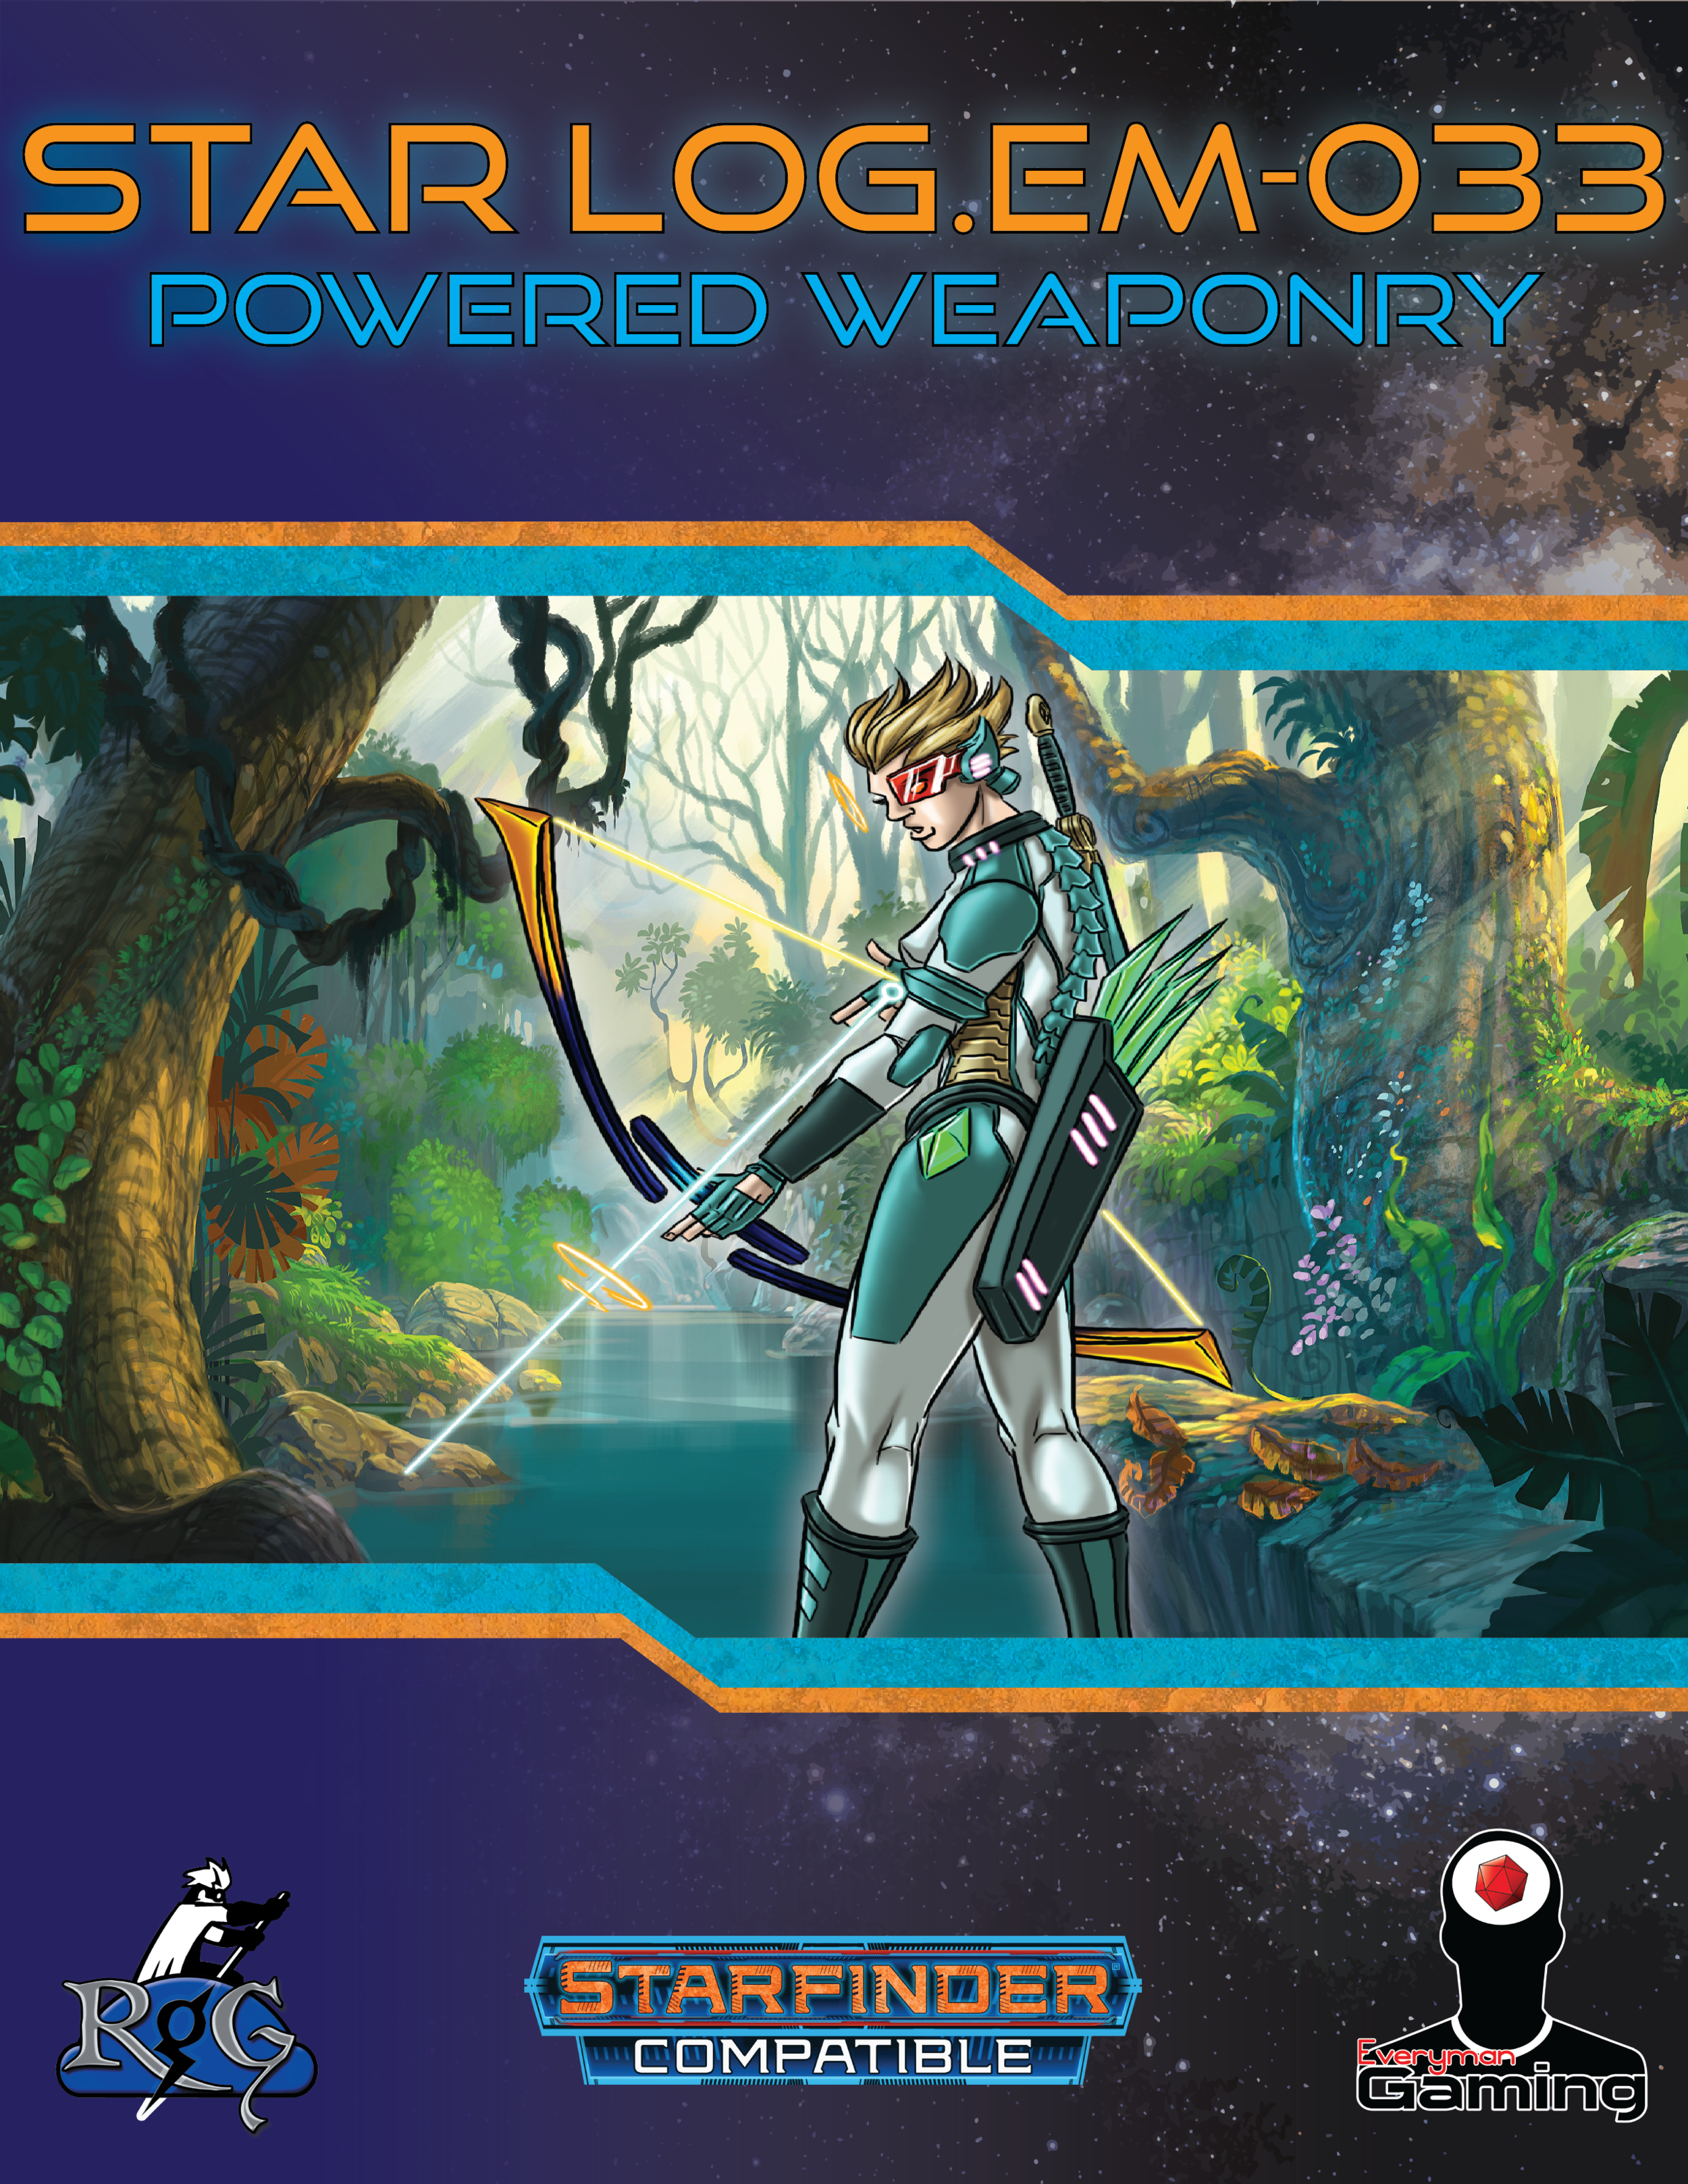 SF033 Powered Weaponry.png